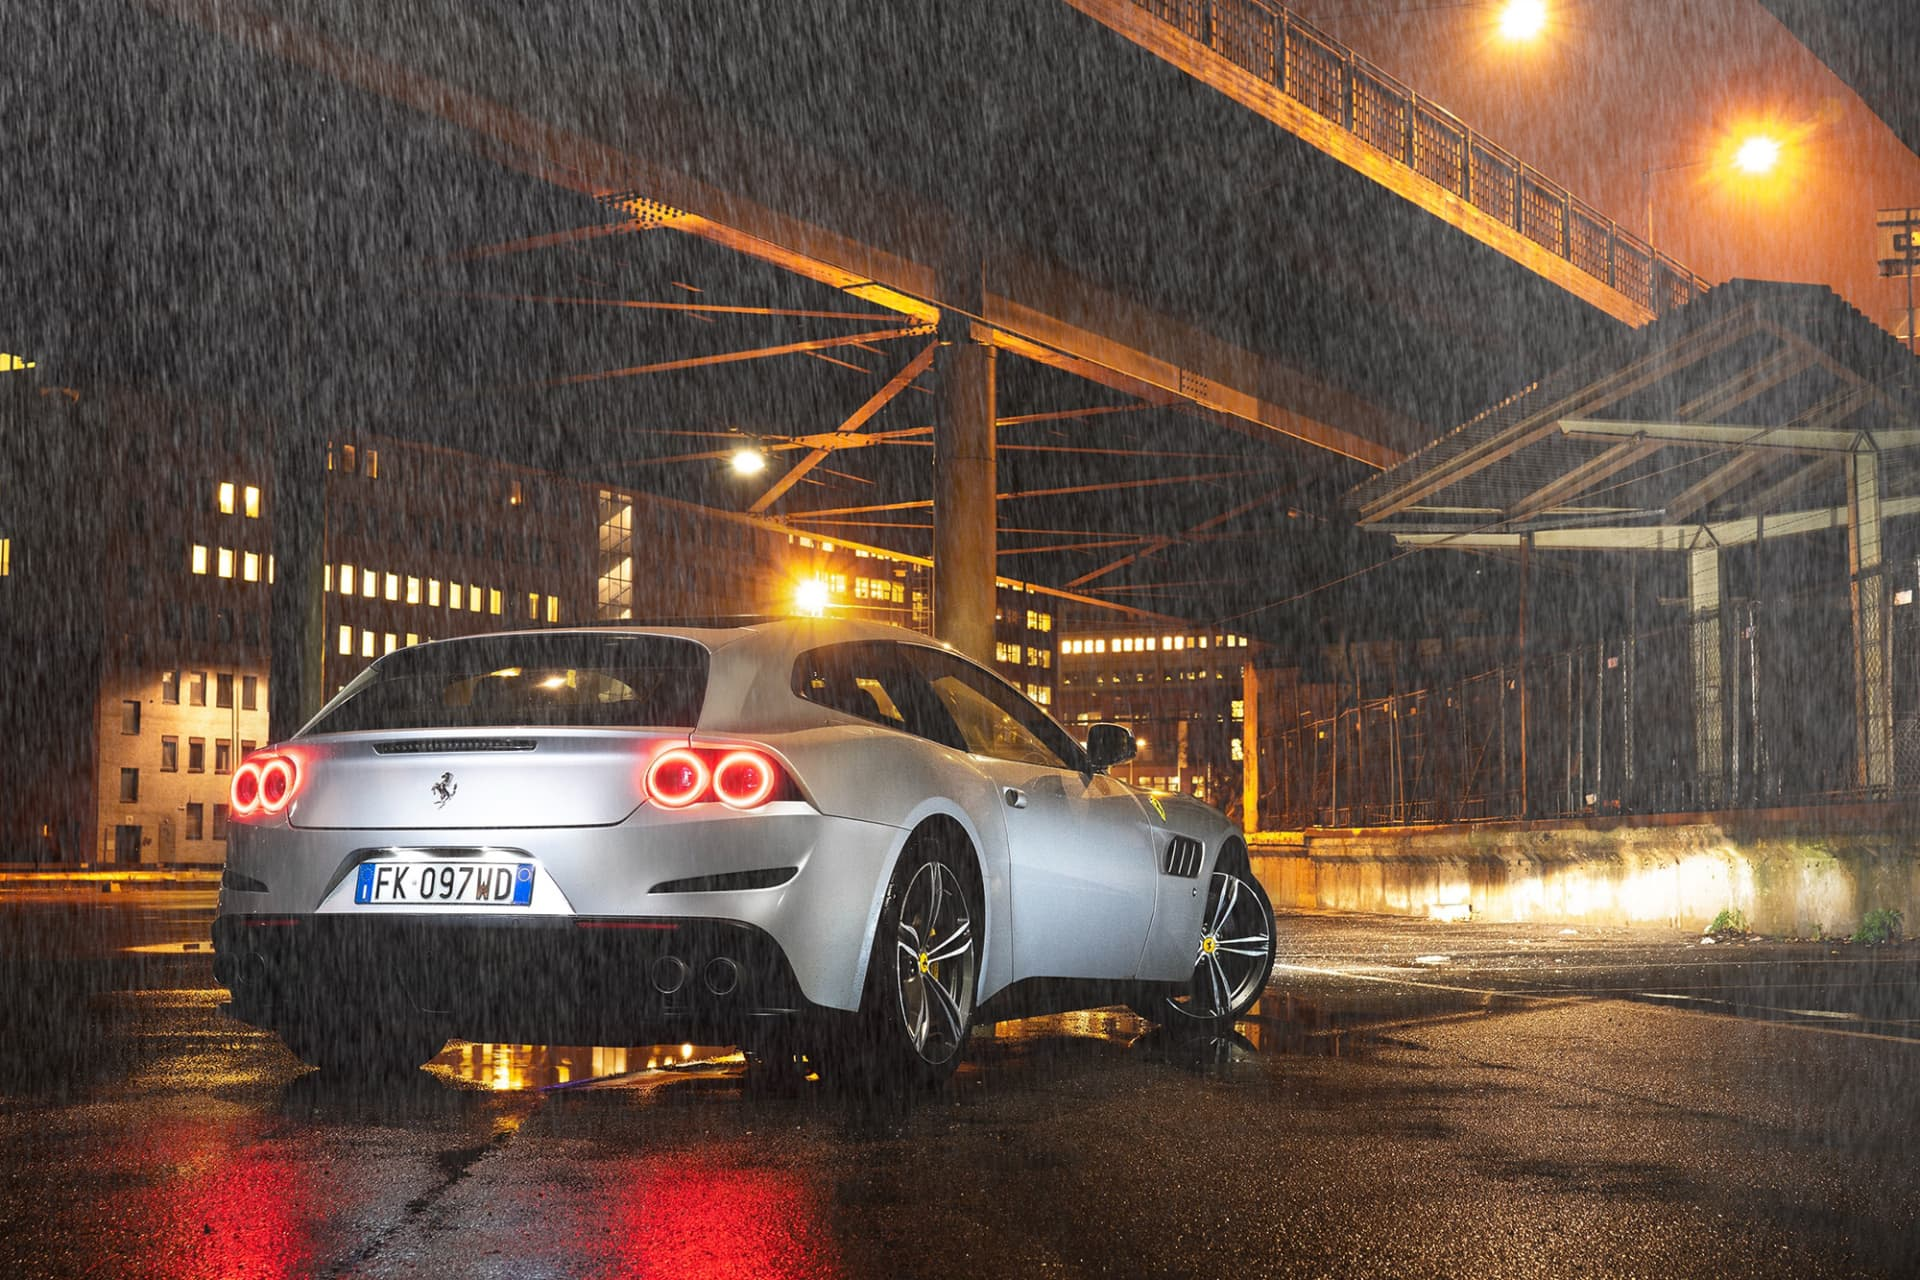 A Stockholm rain shower in barely-above-zero weather does not affect Ferrari's year-round car, the GTC4 Lusso.